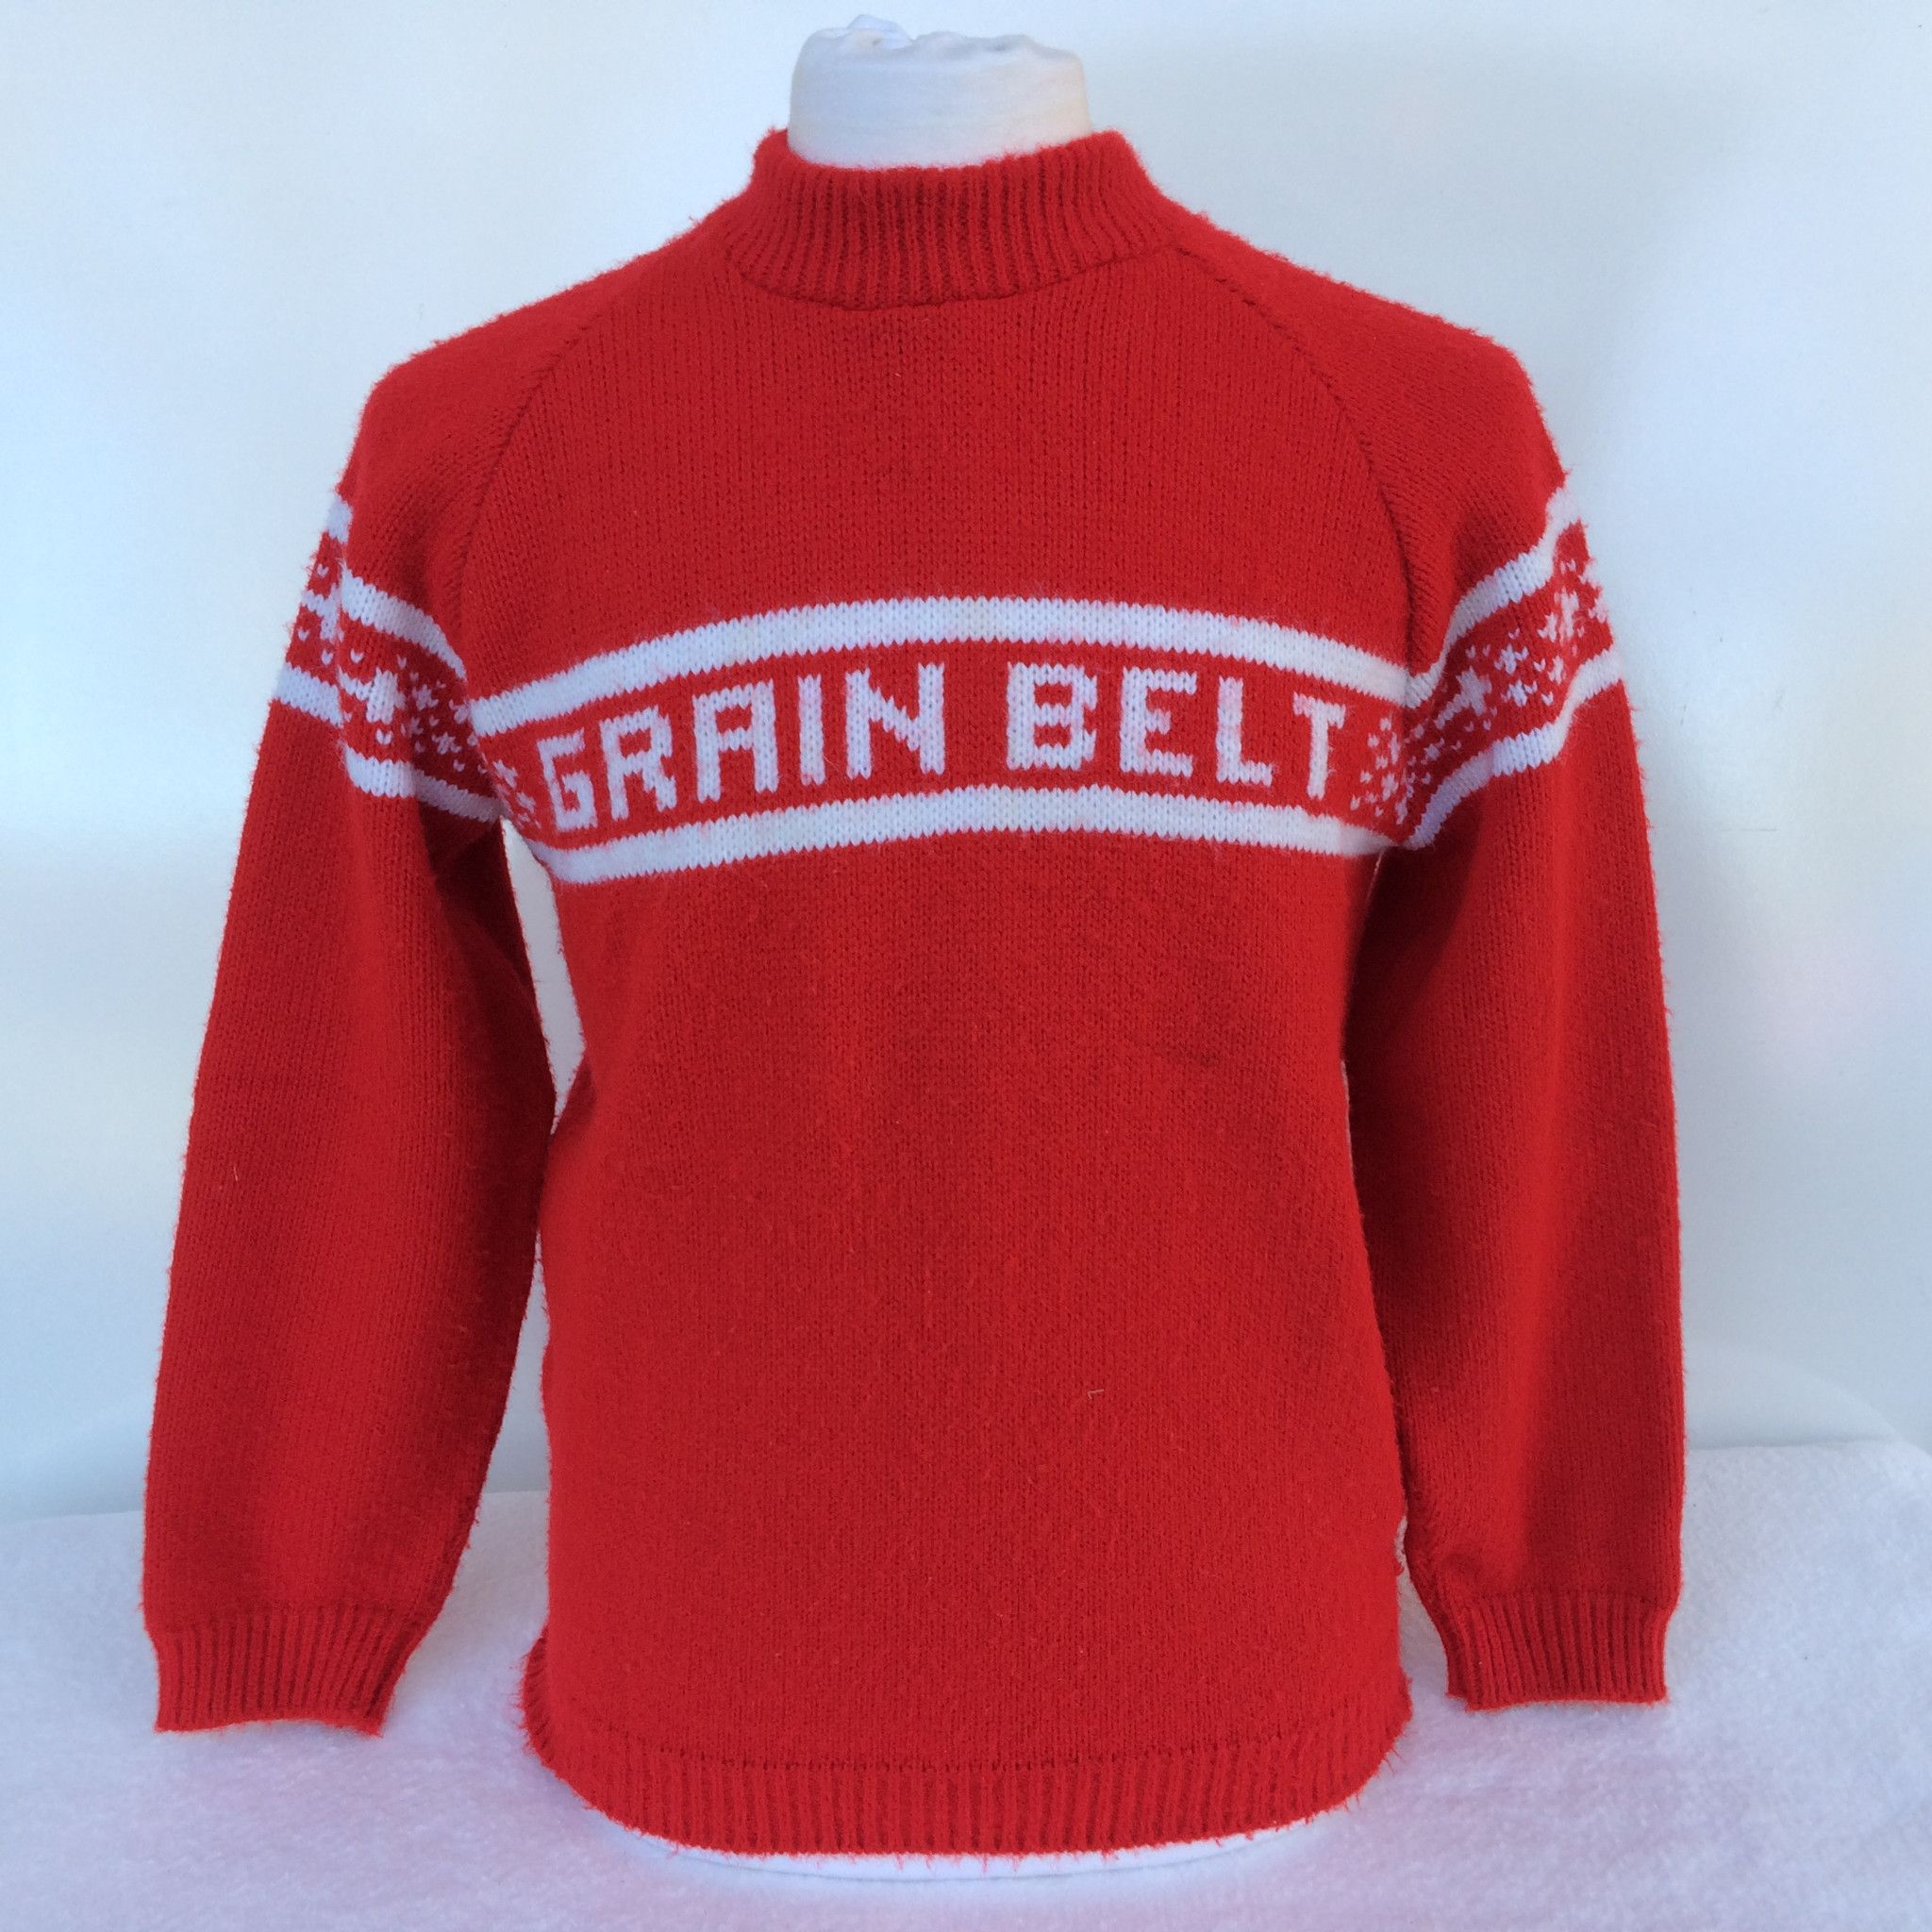 82a3db0e6452d2 Vintage Grain Belt Beer Sweater from Bar Closet. Great Ugly Christmas  Sweater that no one will have!